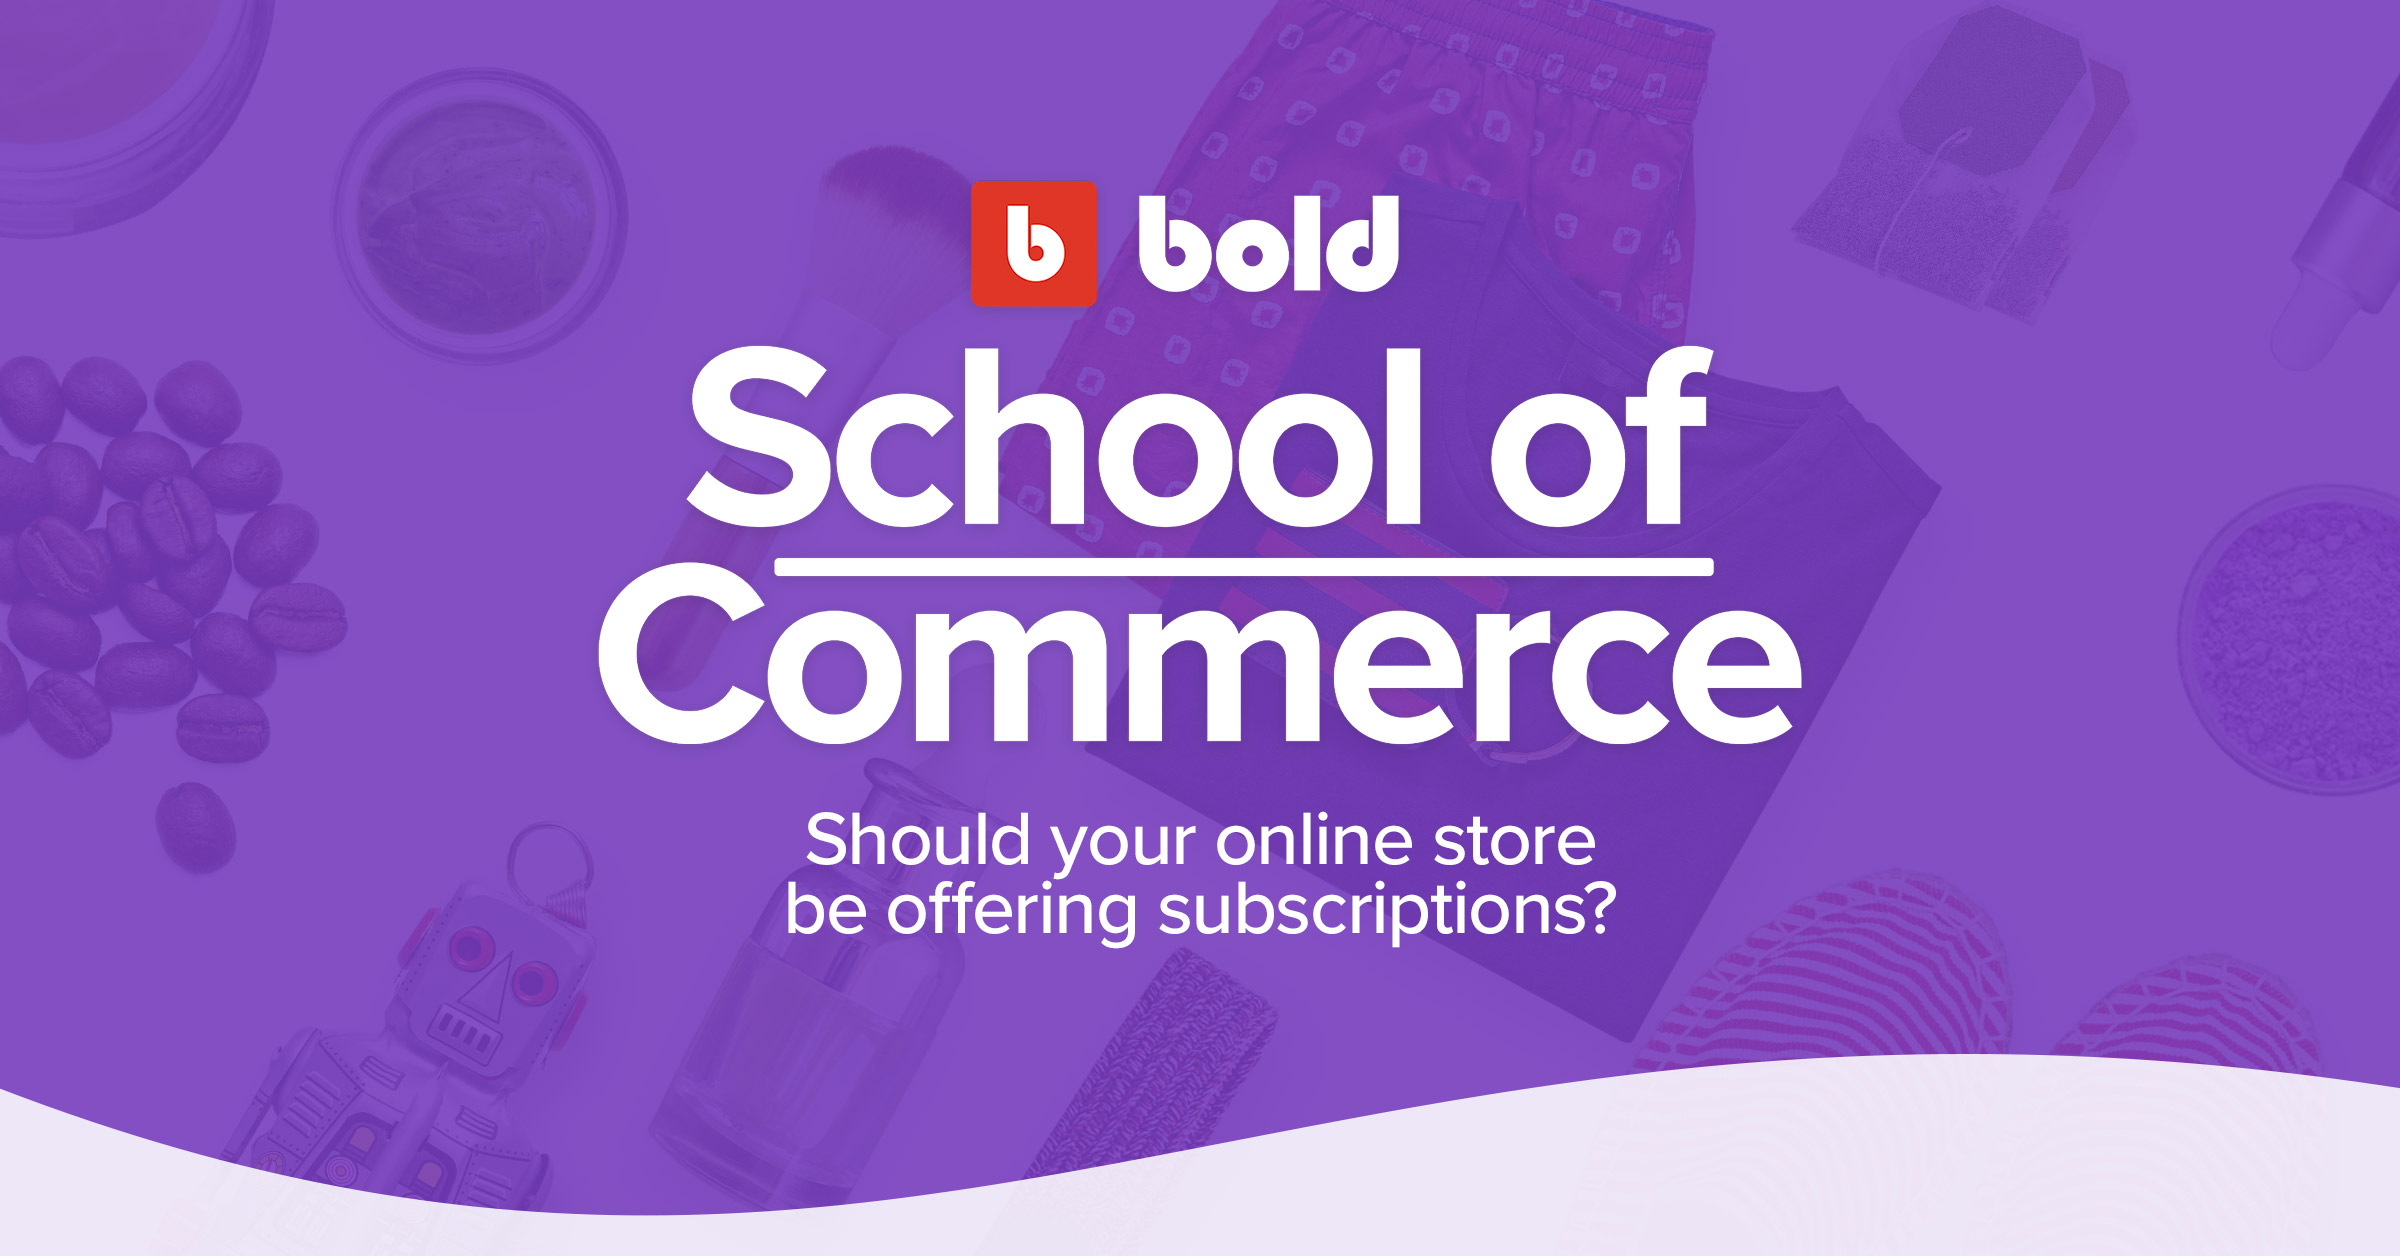 Offer subscriptions online